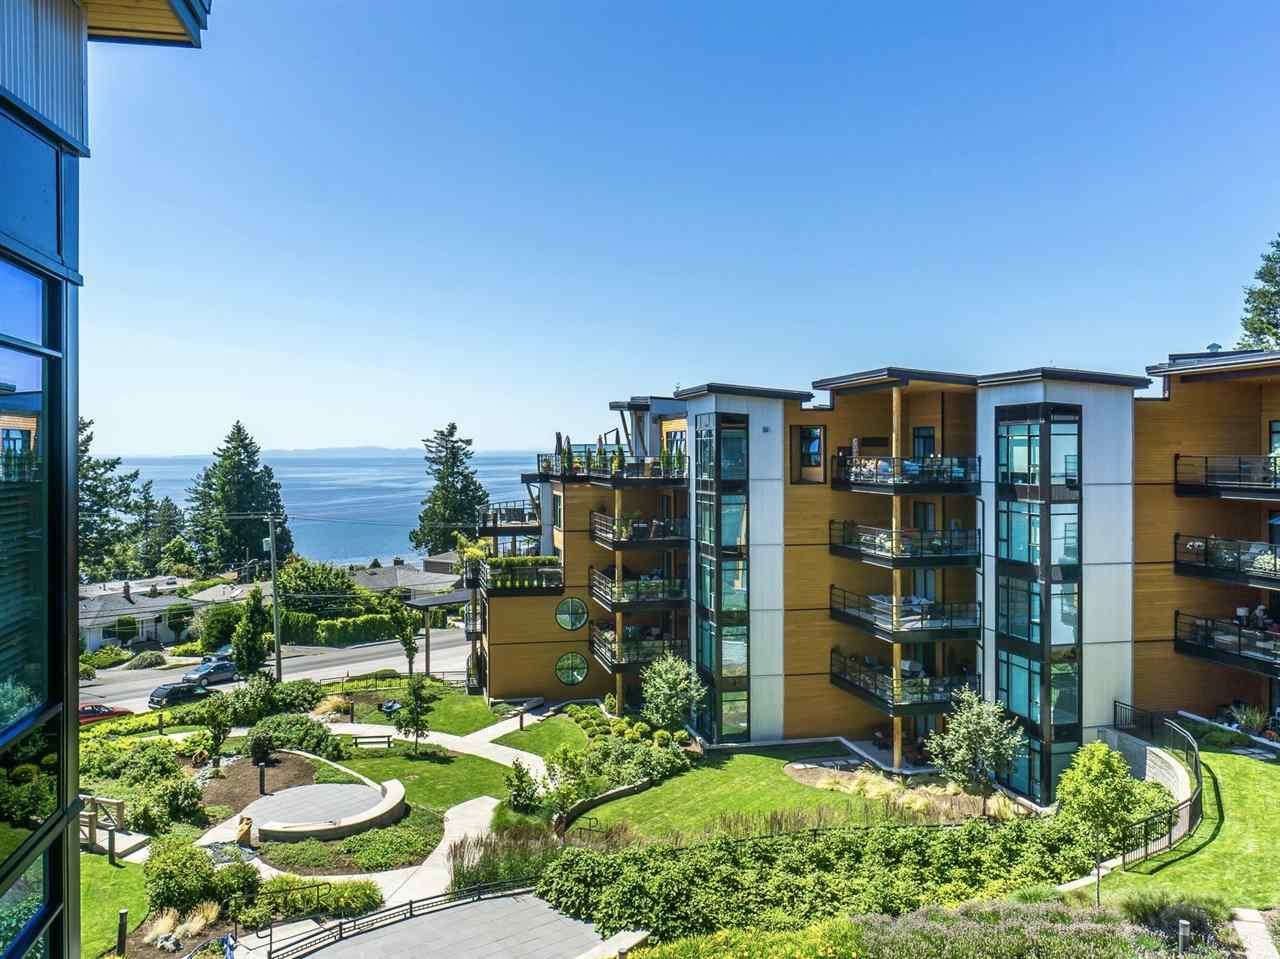 """Main Photo: 512 14855 THRIFT Avenue: White Rock Condo for sale in """"THE ROYCE"""" (South Surrey White Rock)  : MLS®# R2289976"""